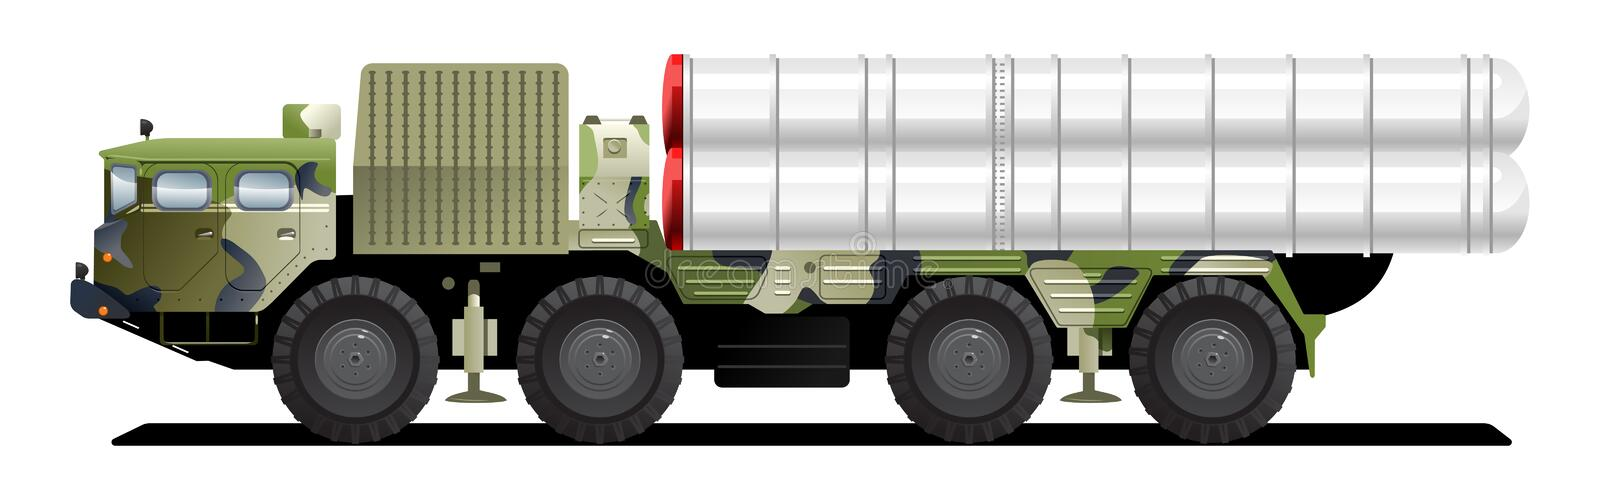 Download Military Launch Vehicle Stock Images - Image: 18206594